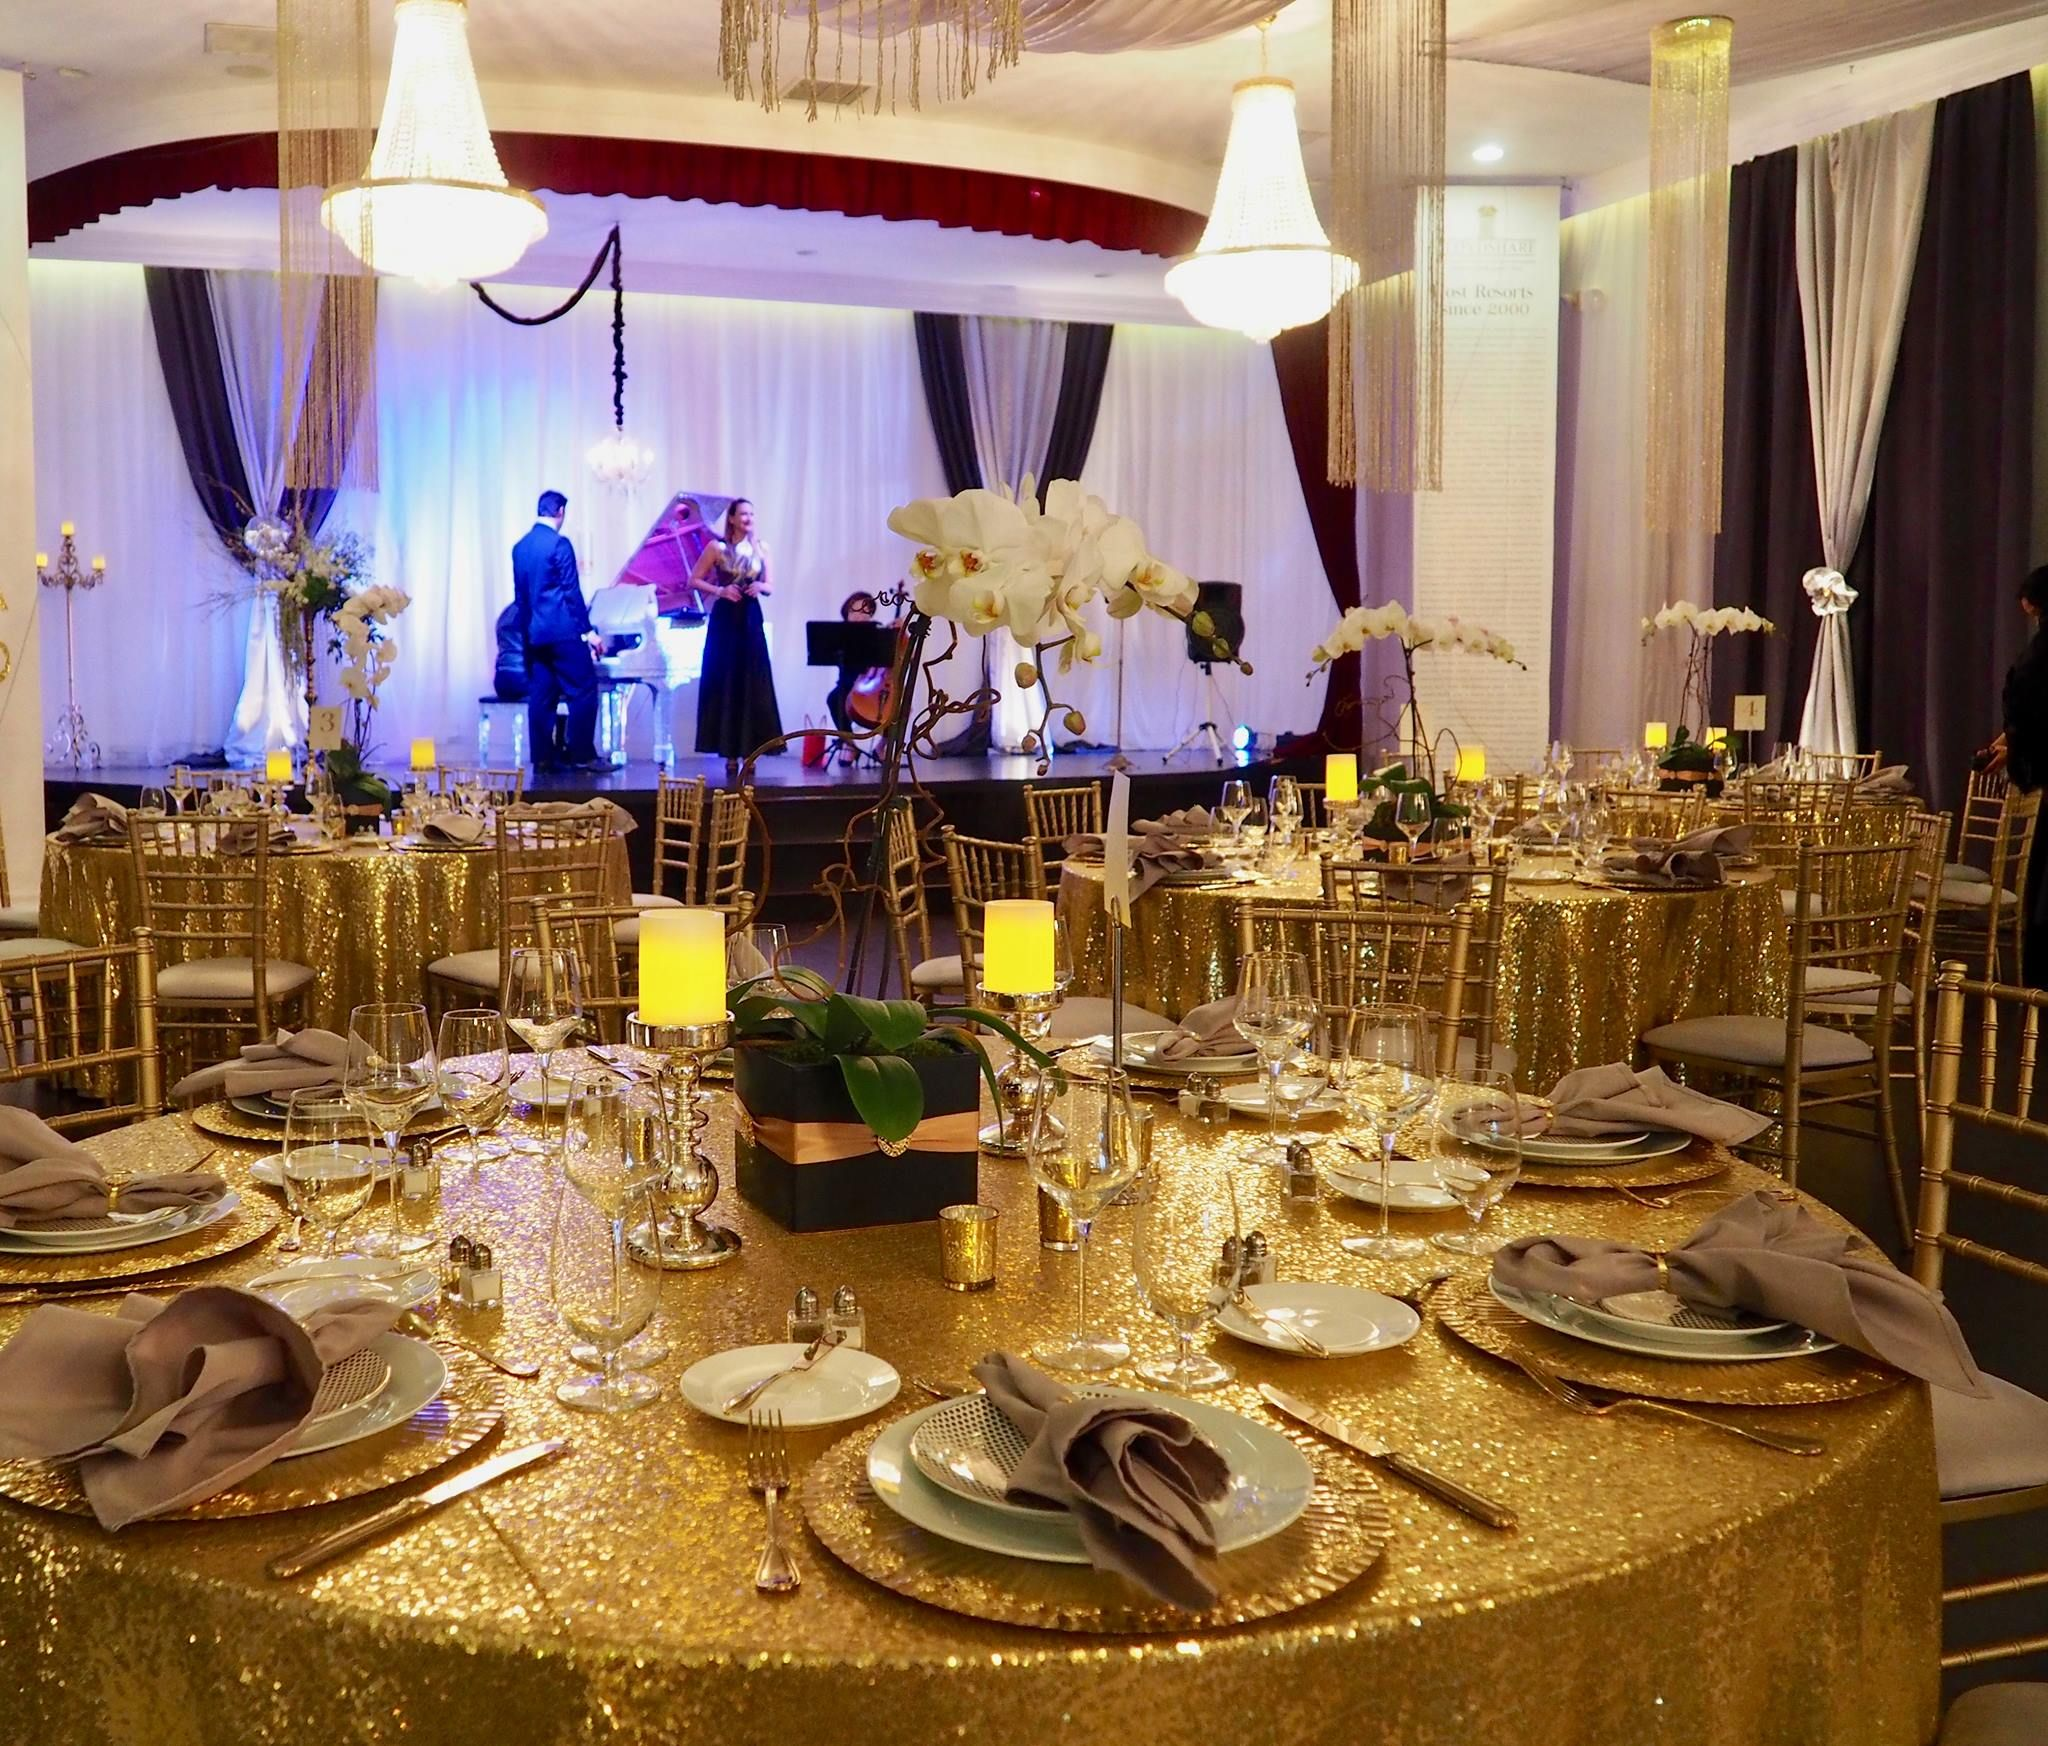 Start Your Life Together With An AMAZING Reception At The